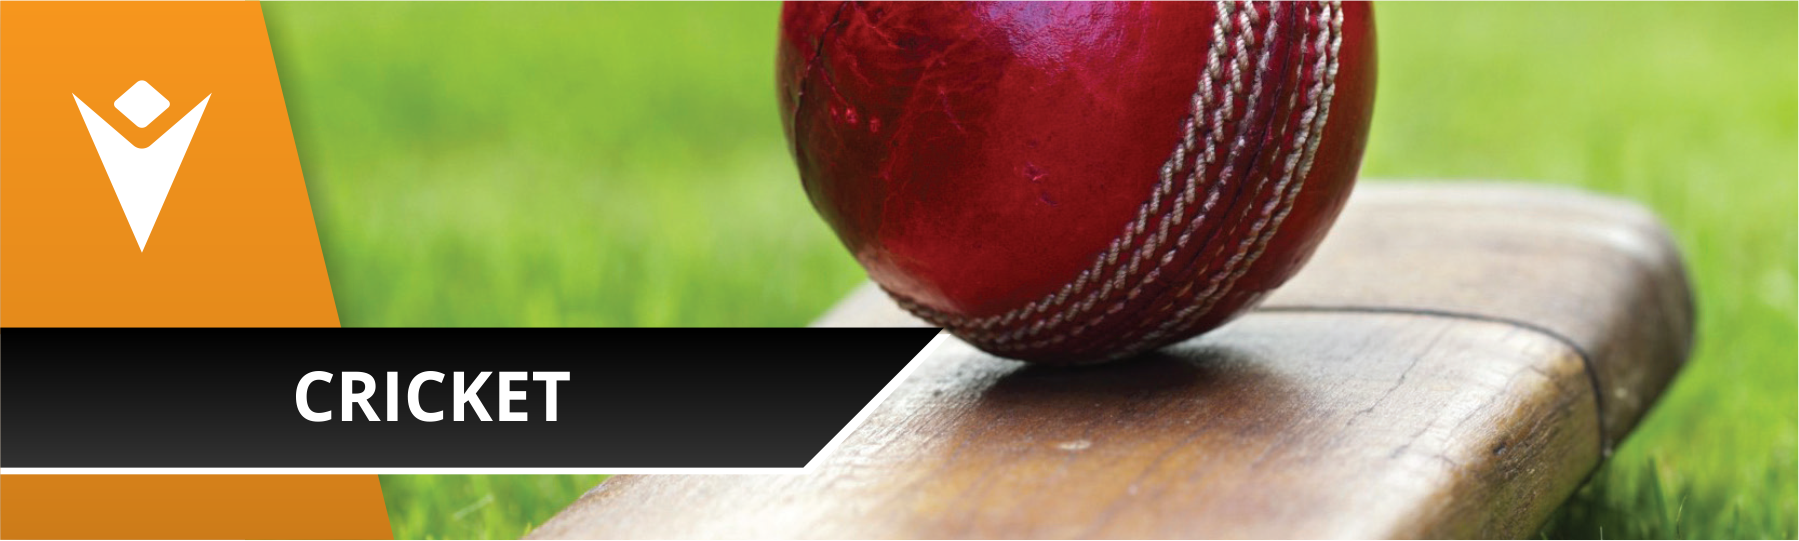 cricket-banner.png